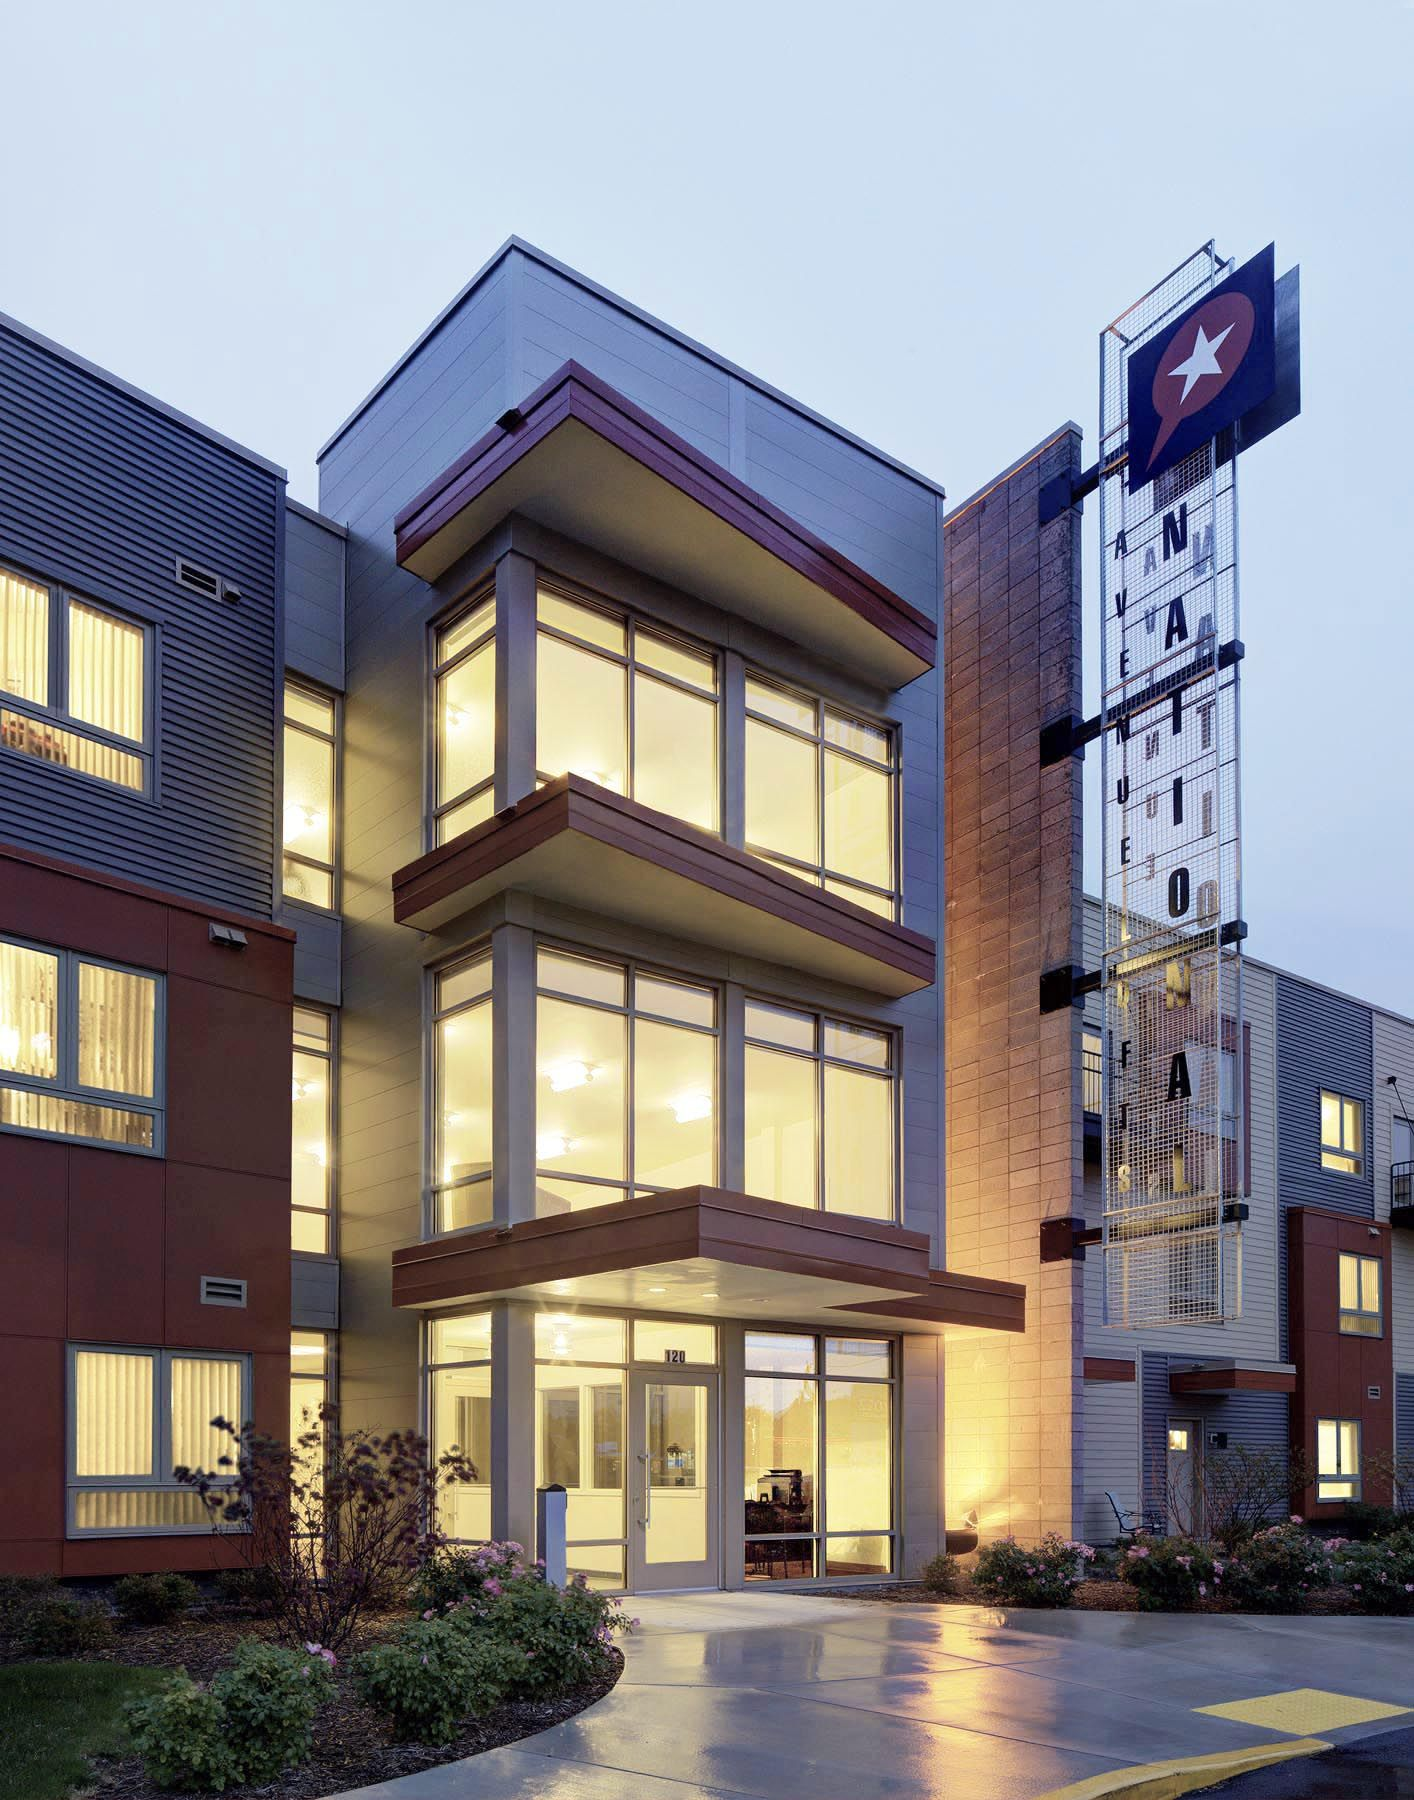 National Avenue Lofts Continuum Architects + Planners S